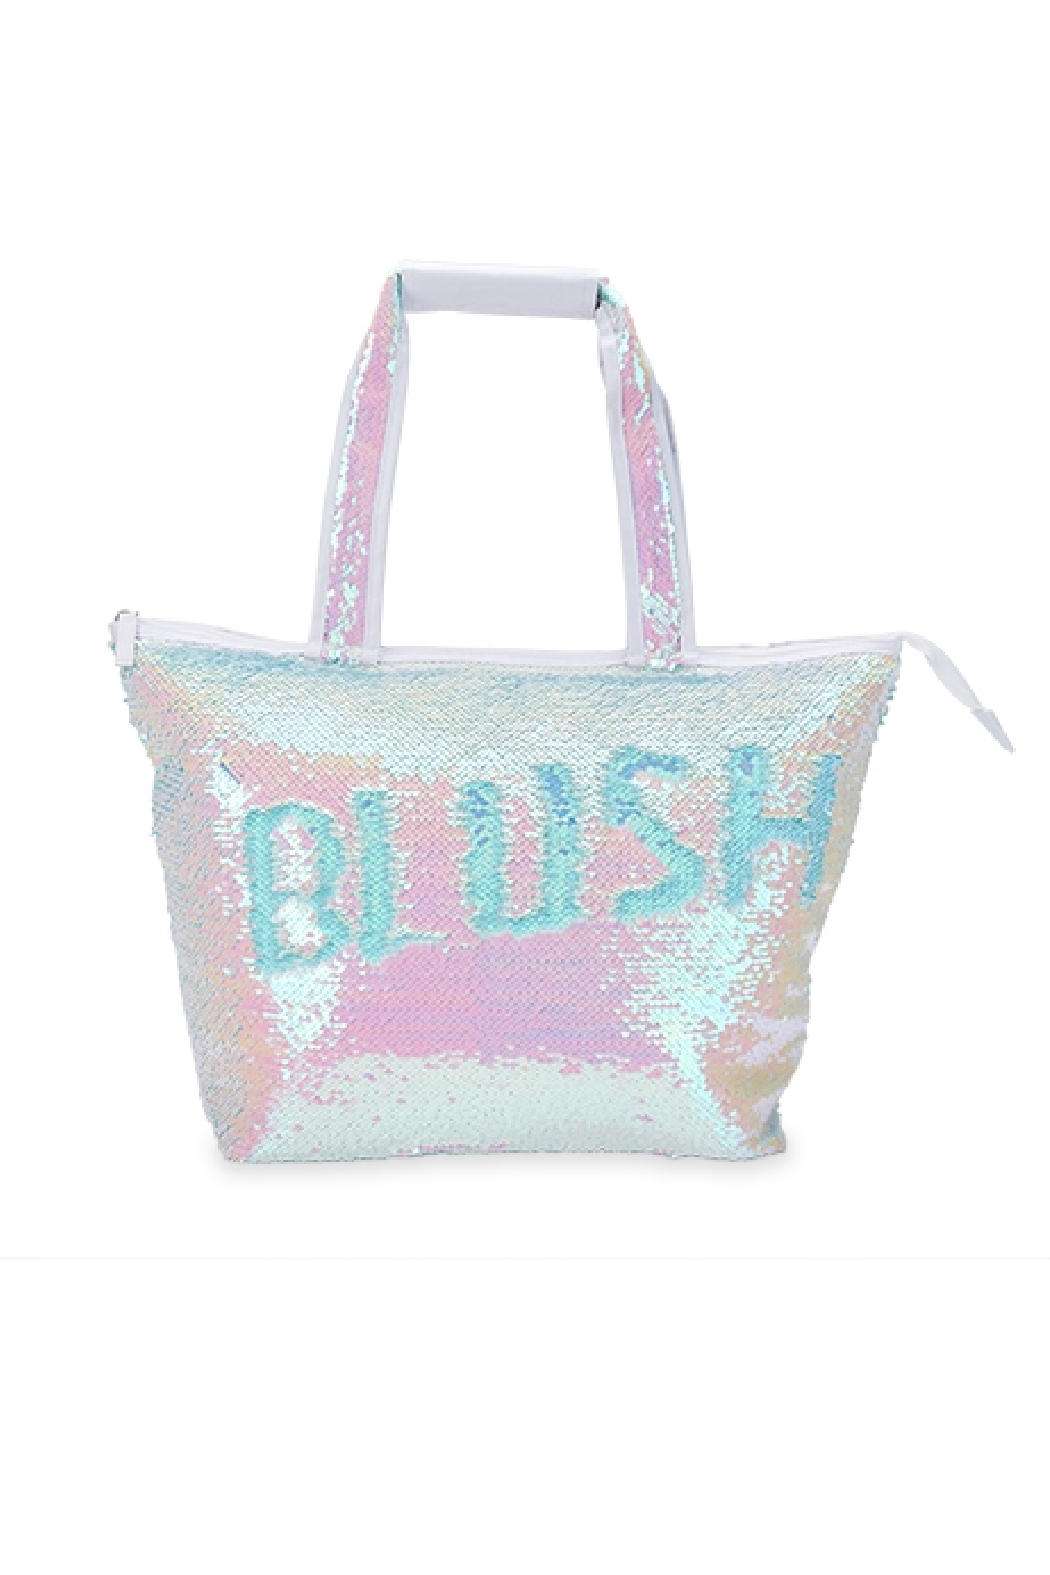 Blush Mermaid Sequin Cooler Tote - Front Full Image